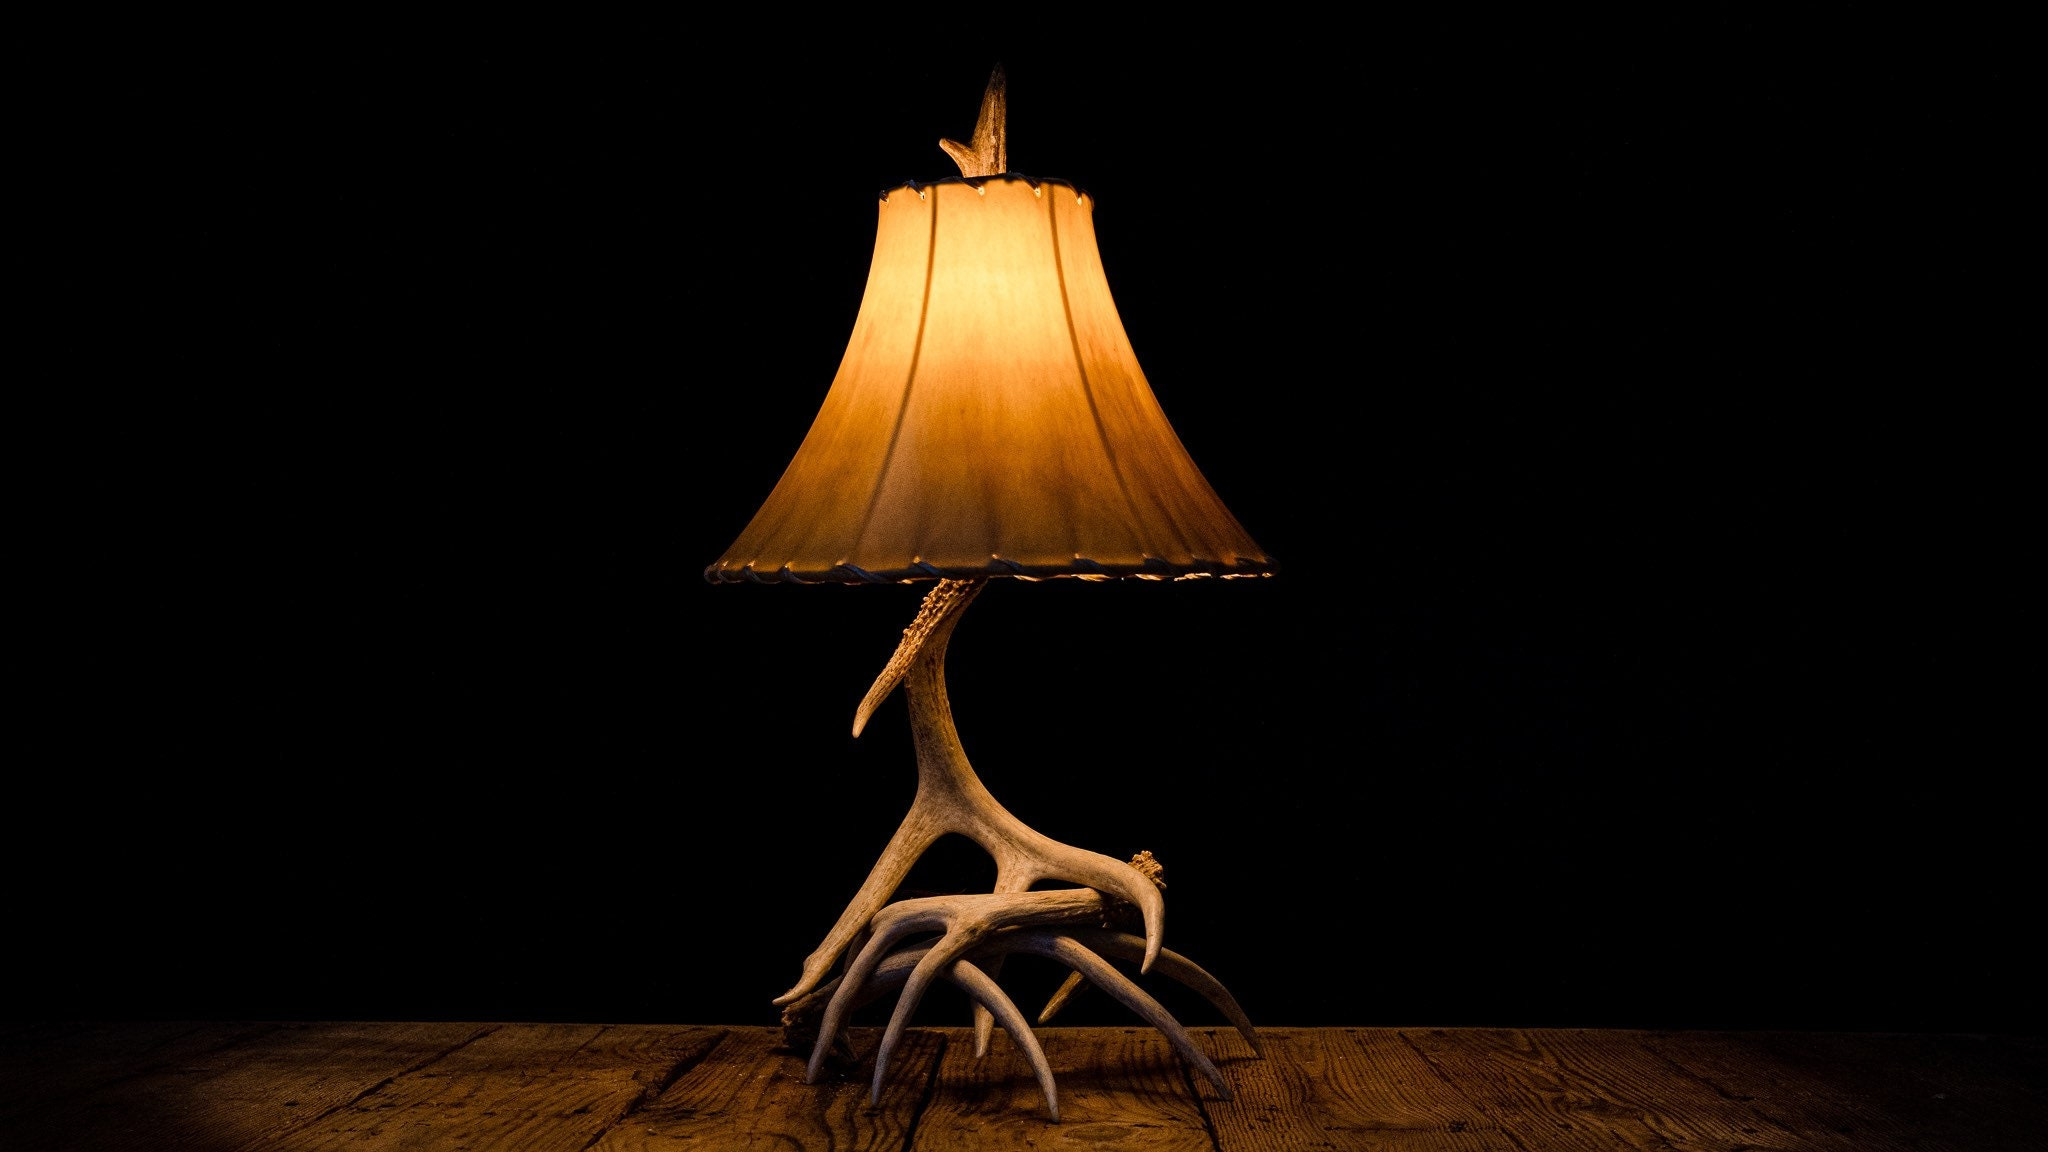 Small 3-4 Whitetail Deer Shed Antler Lamp Rustic Country ...